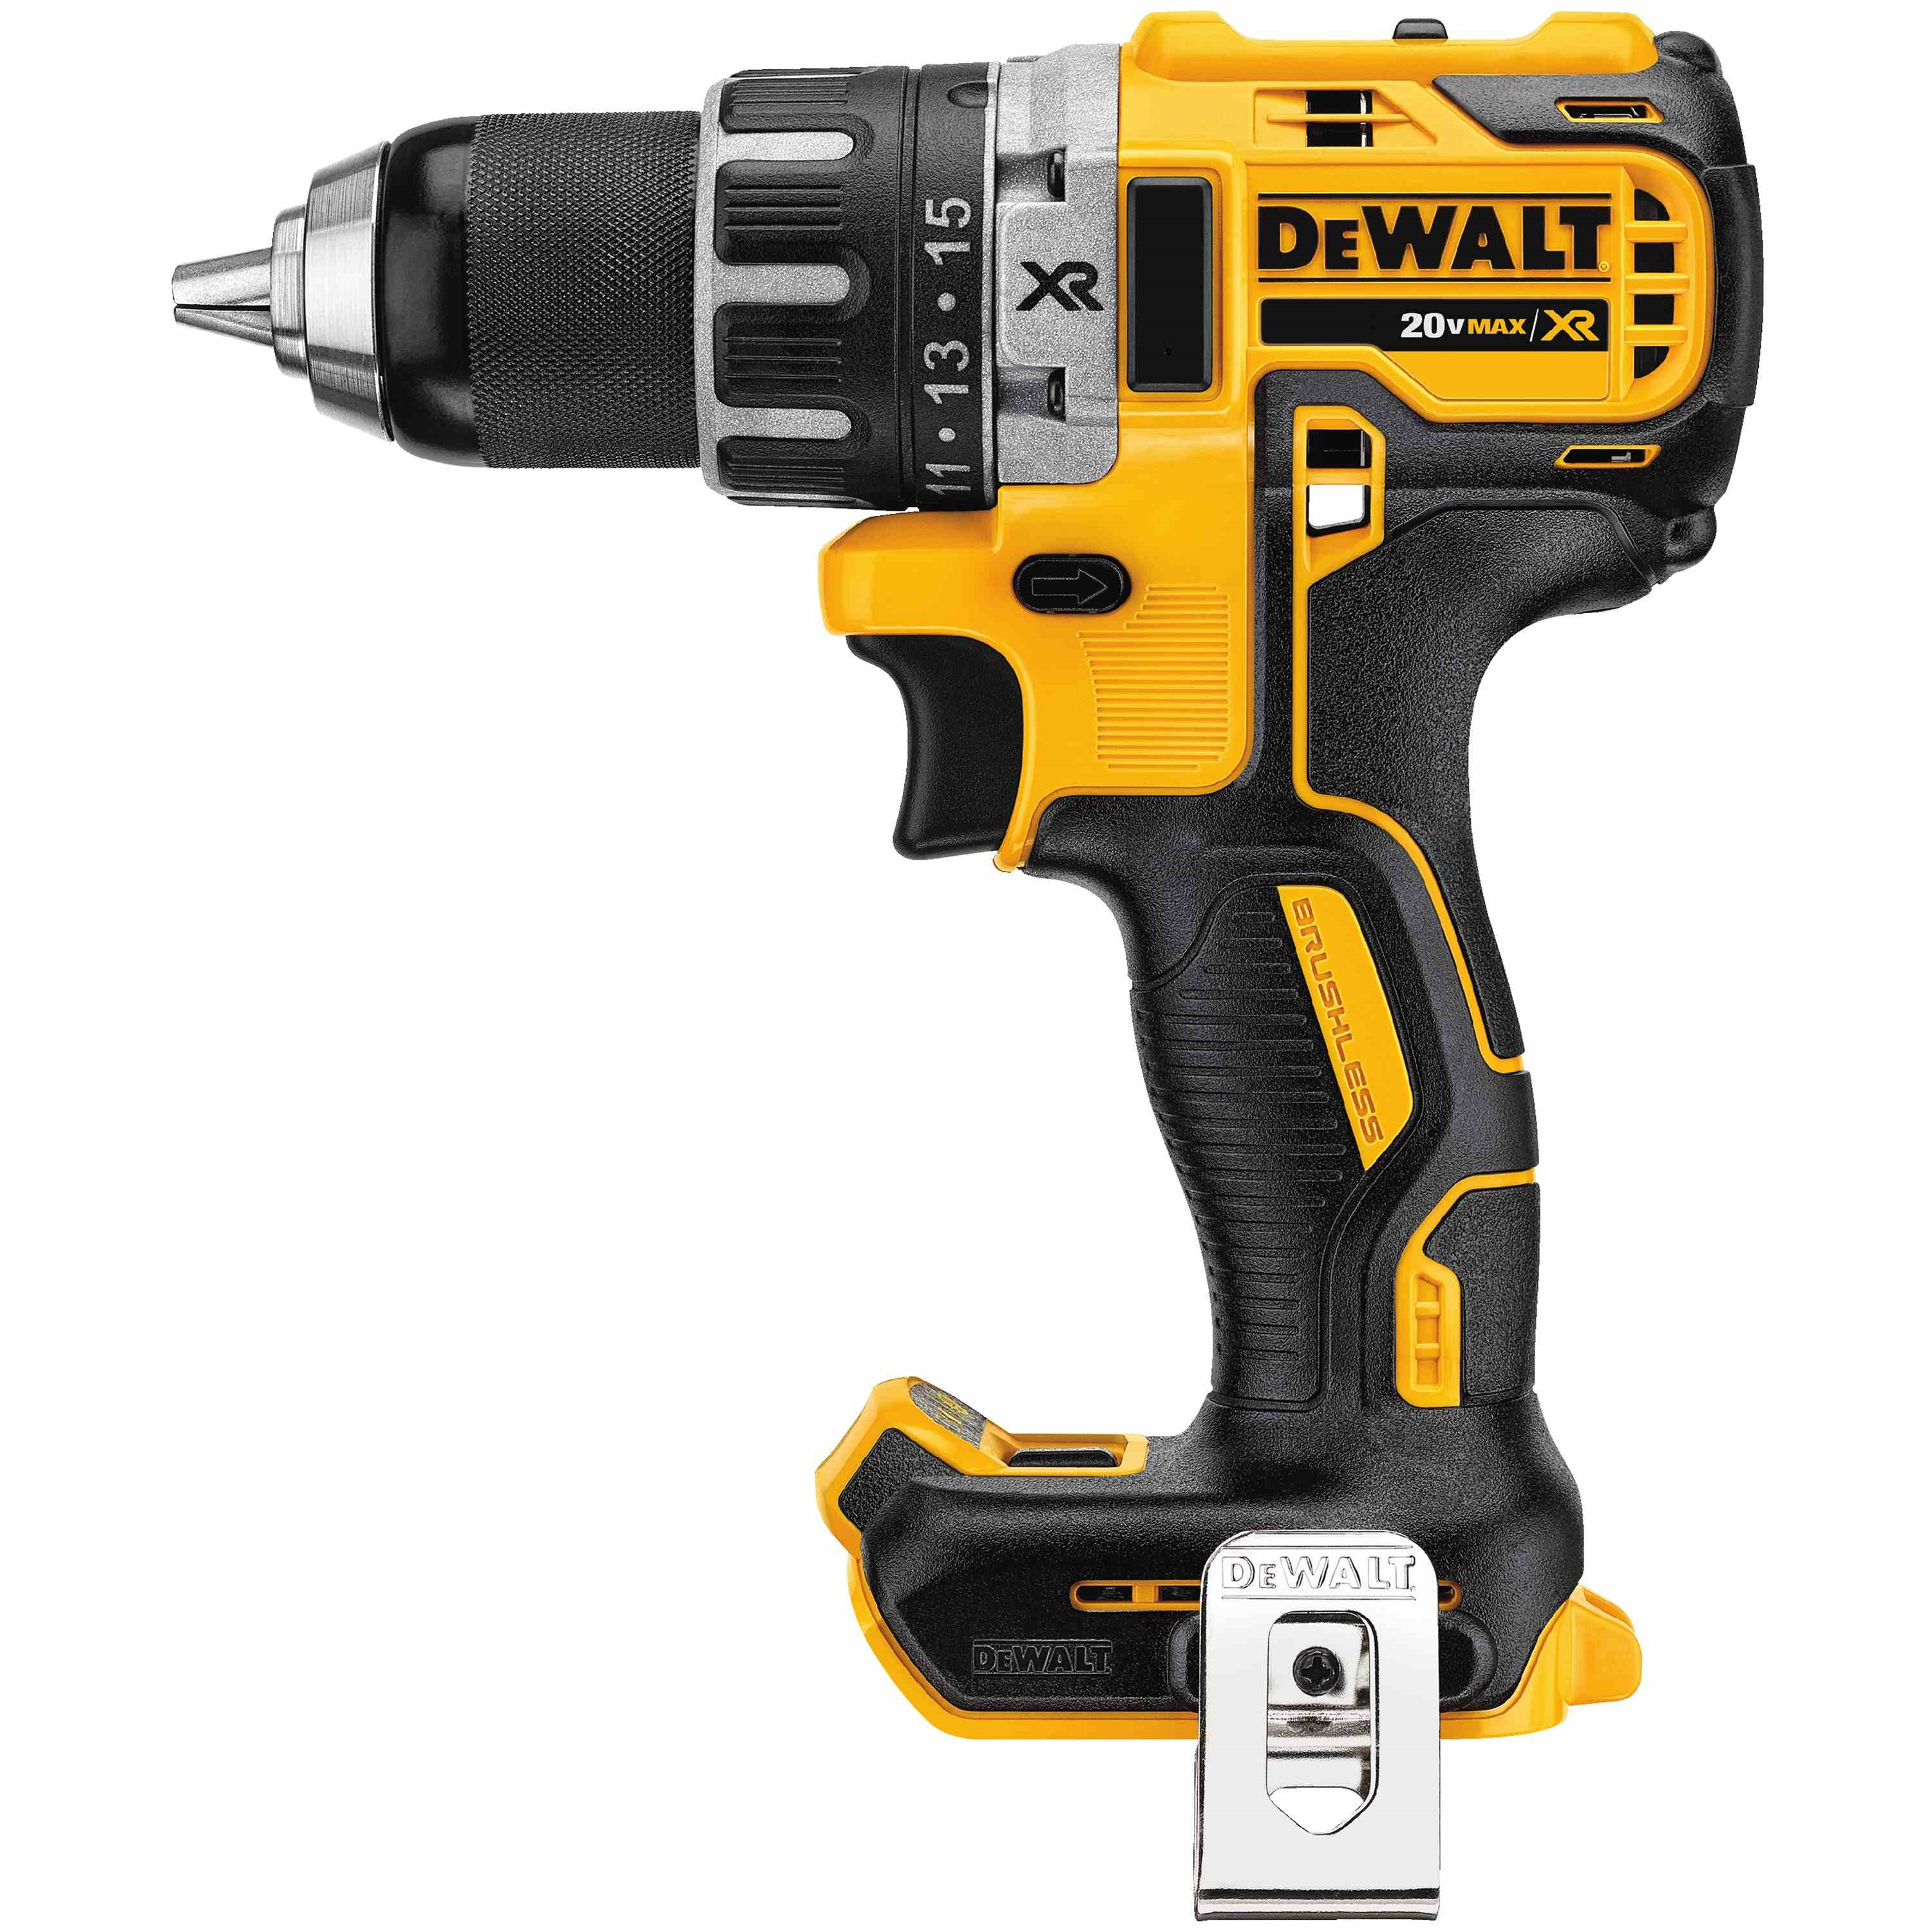 20V MAX* XR Li-Ion Brushless Compact Drill/Driver (Tool Only)